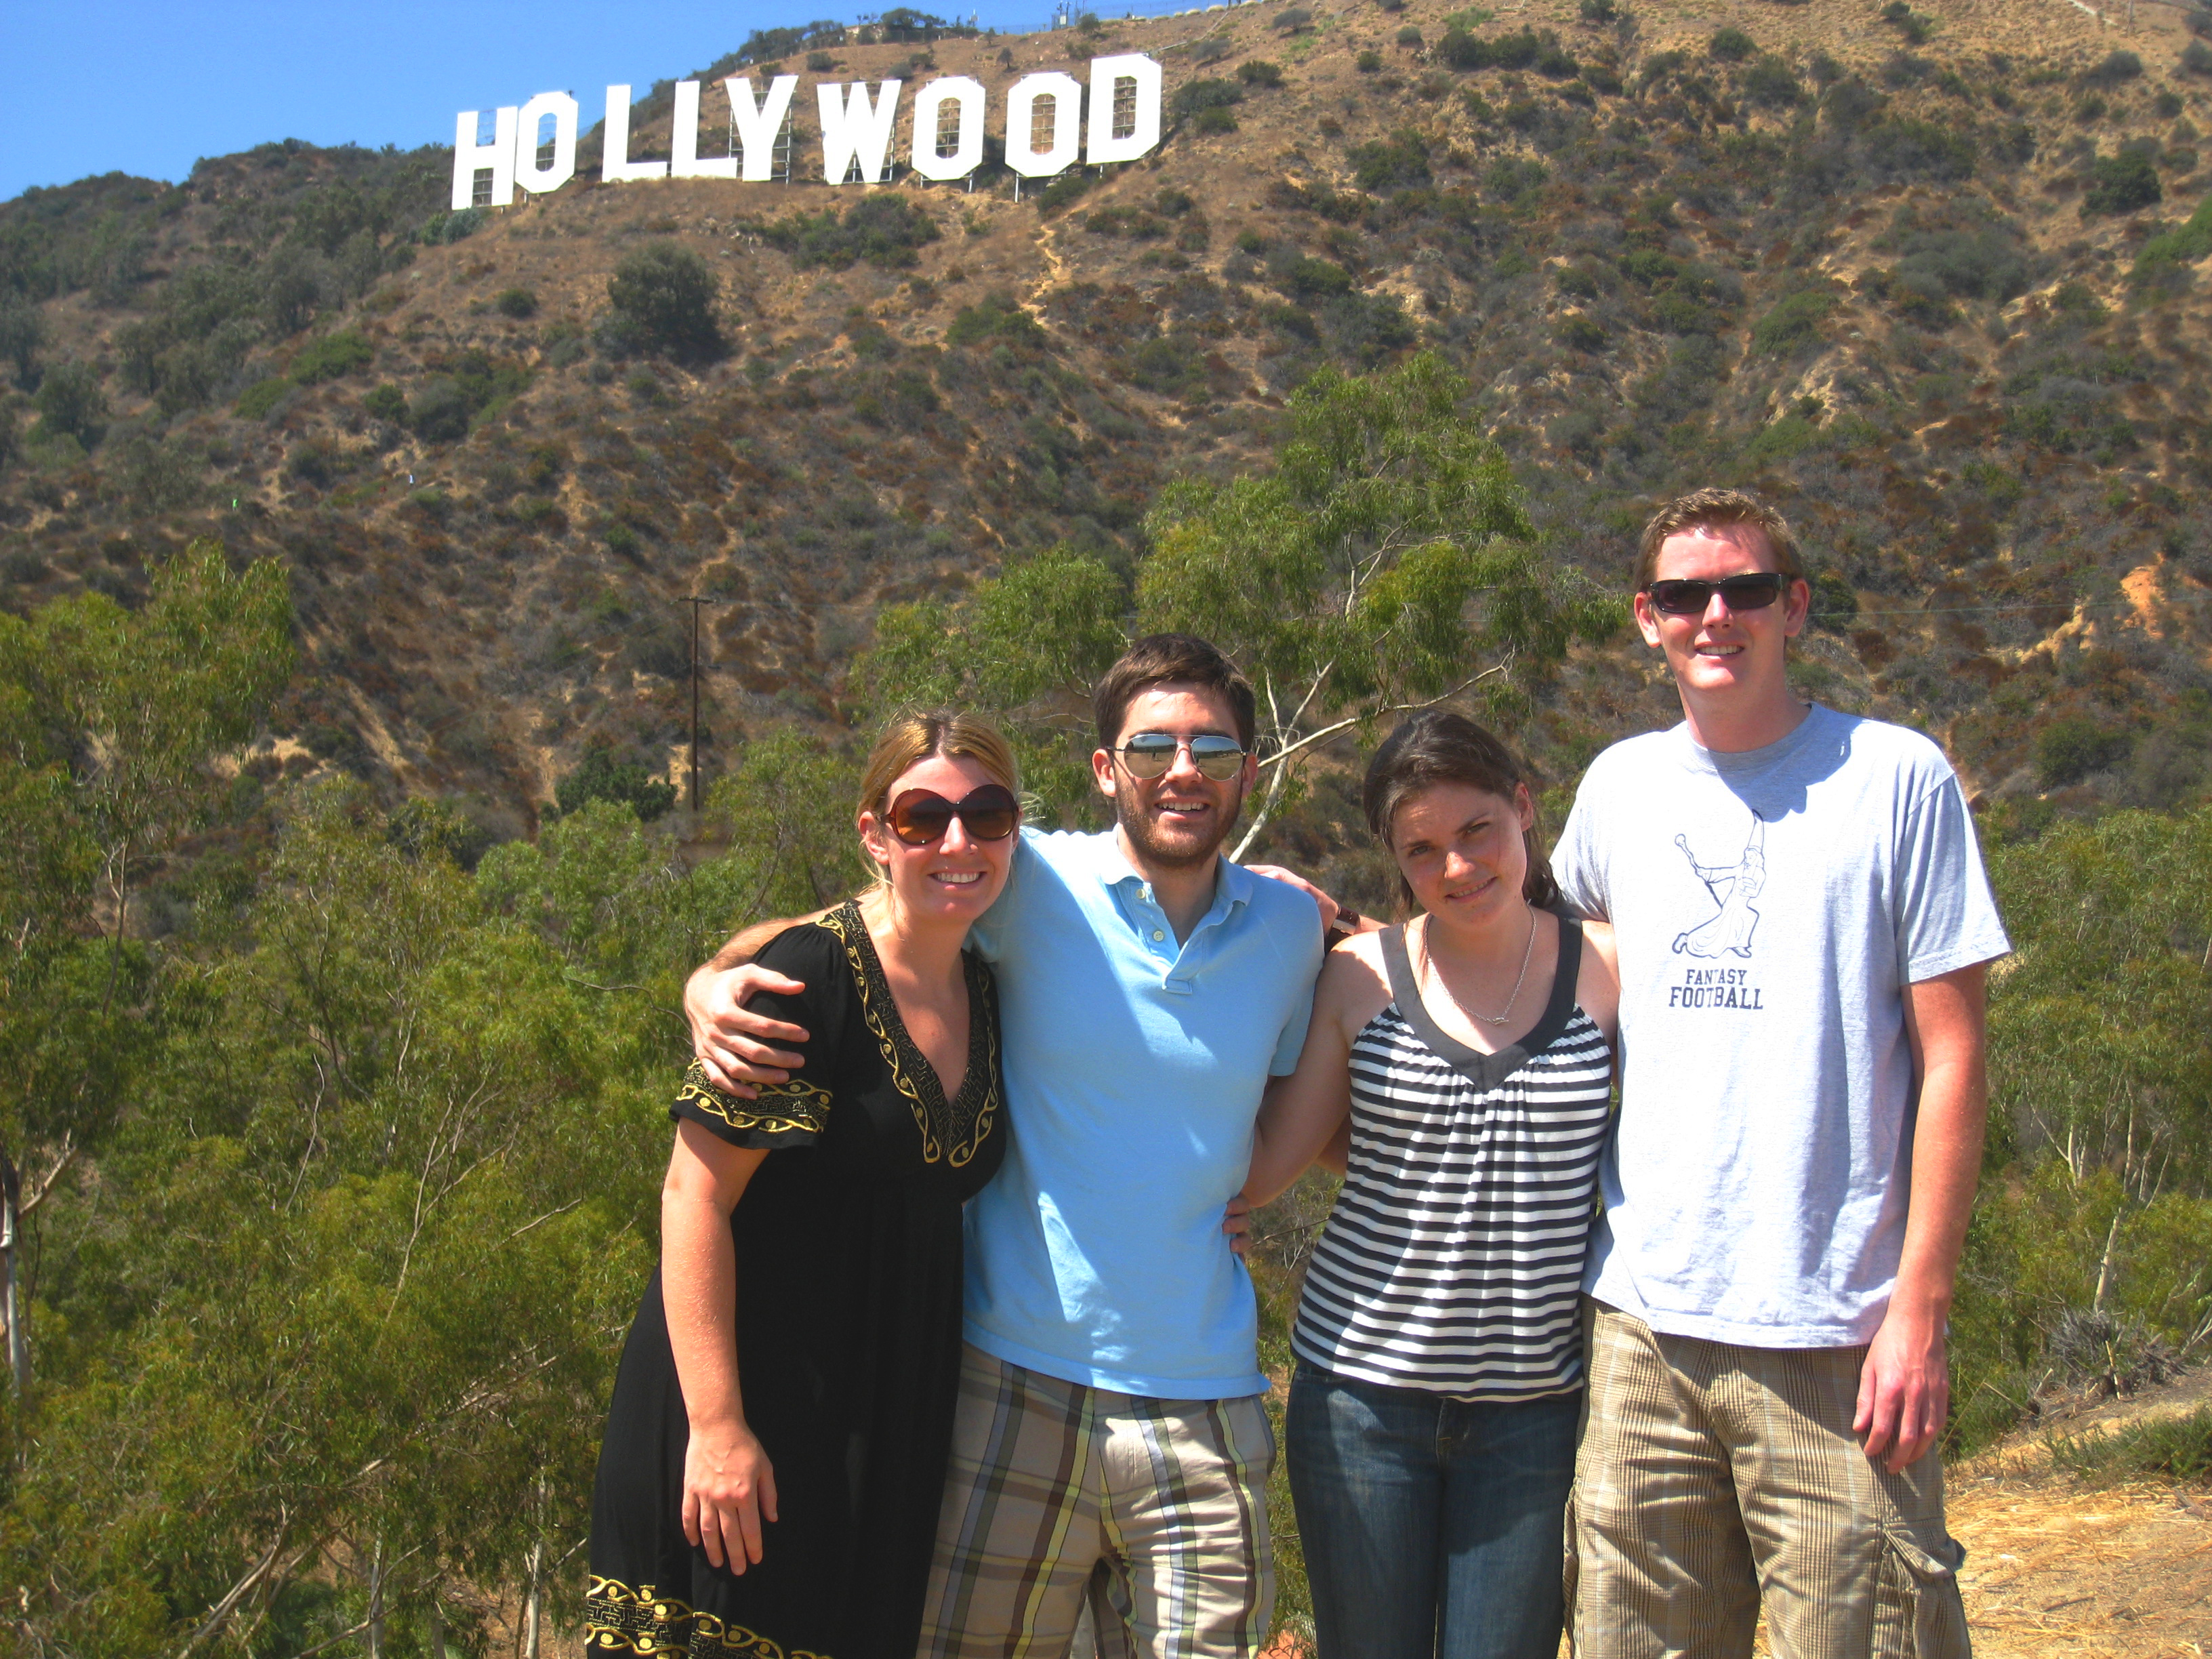 Best Hollywood Sign Viewpoints